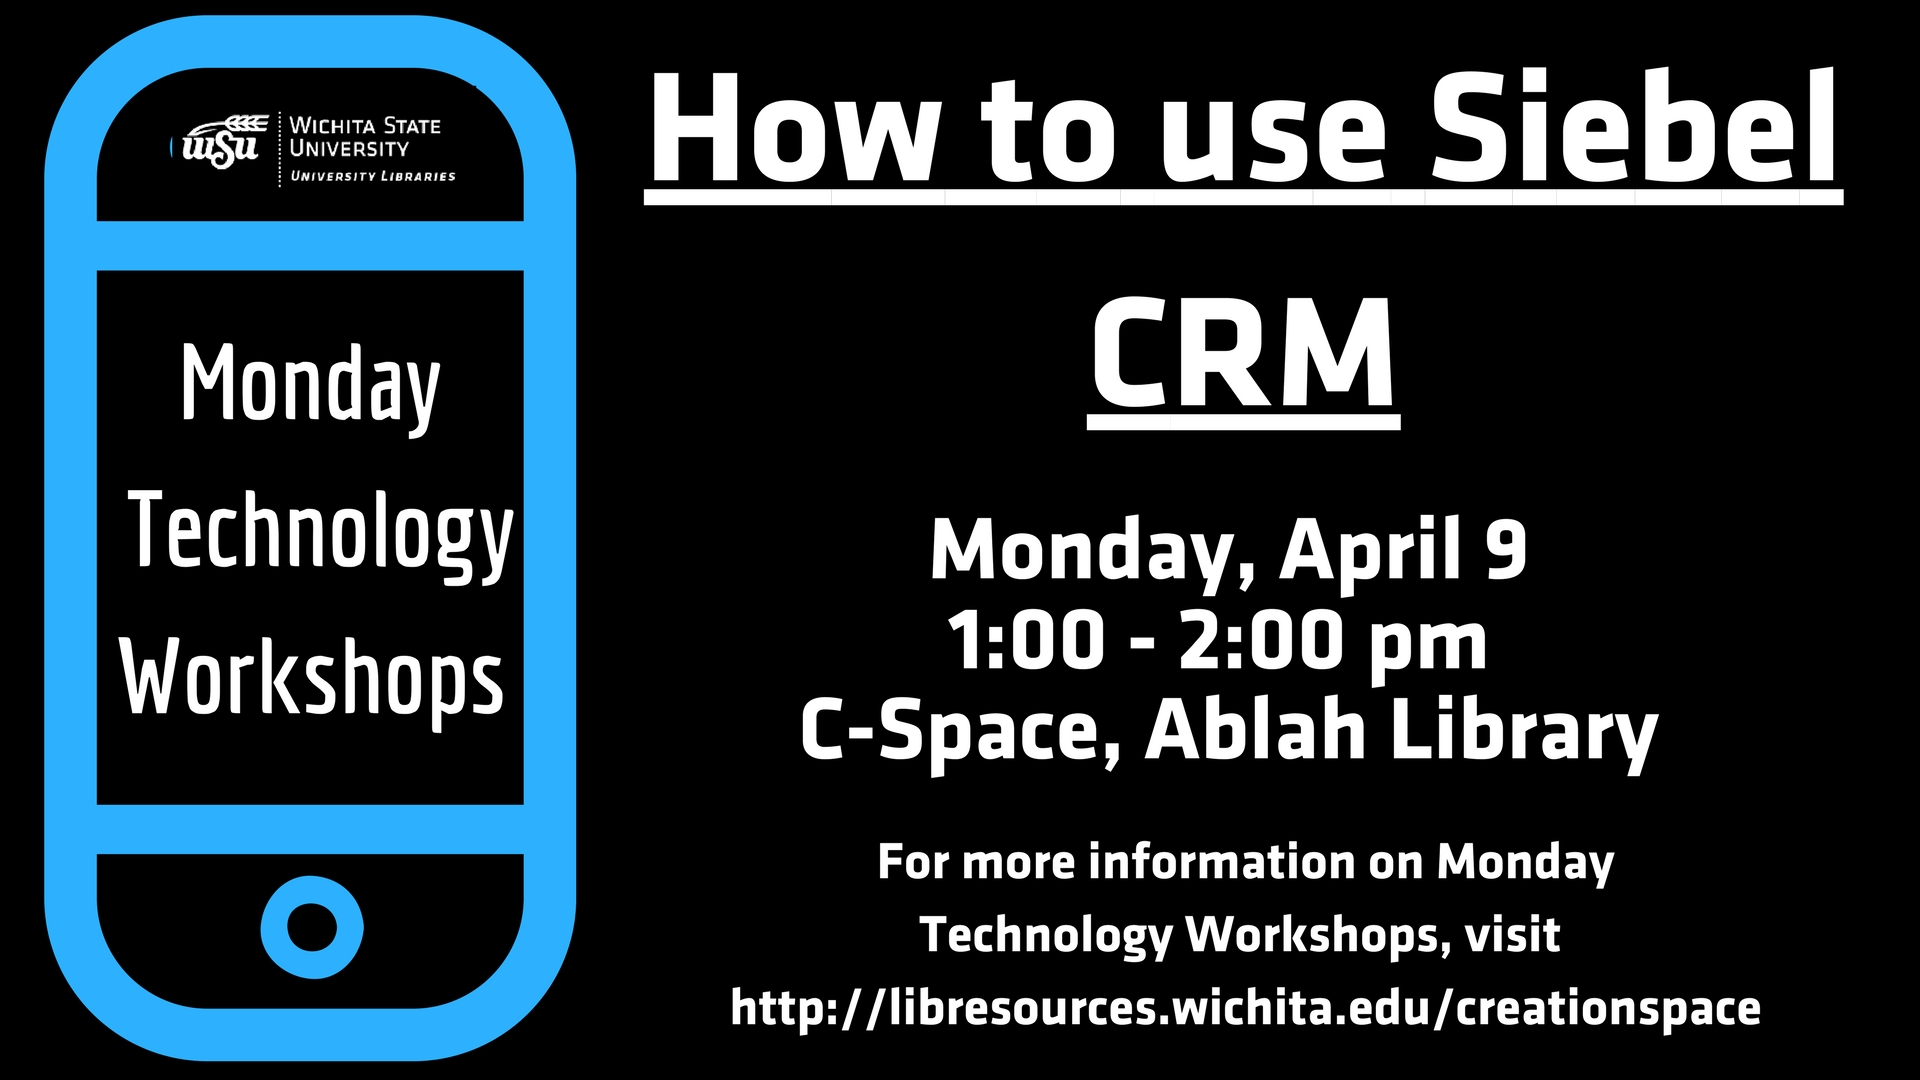 Monday Technology Workshop - Siebel CRM